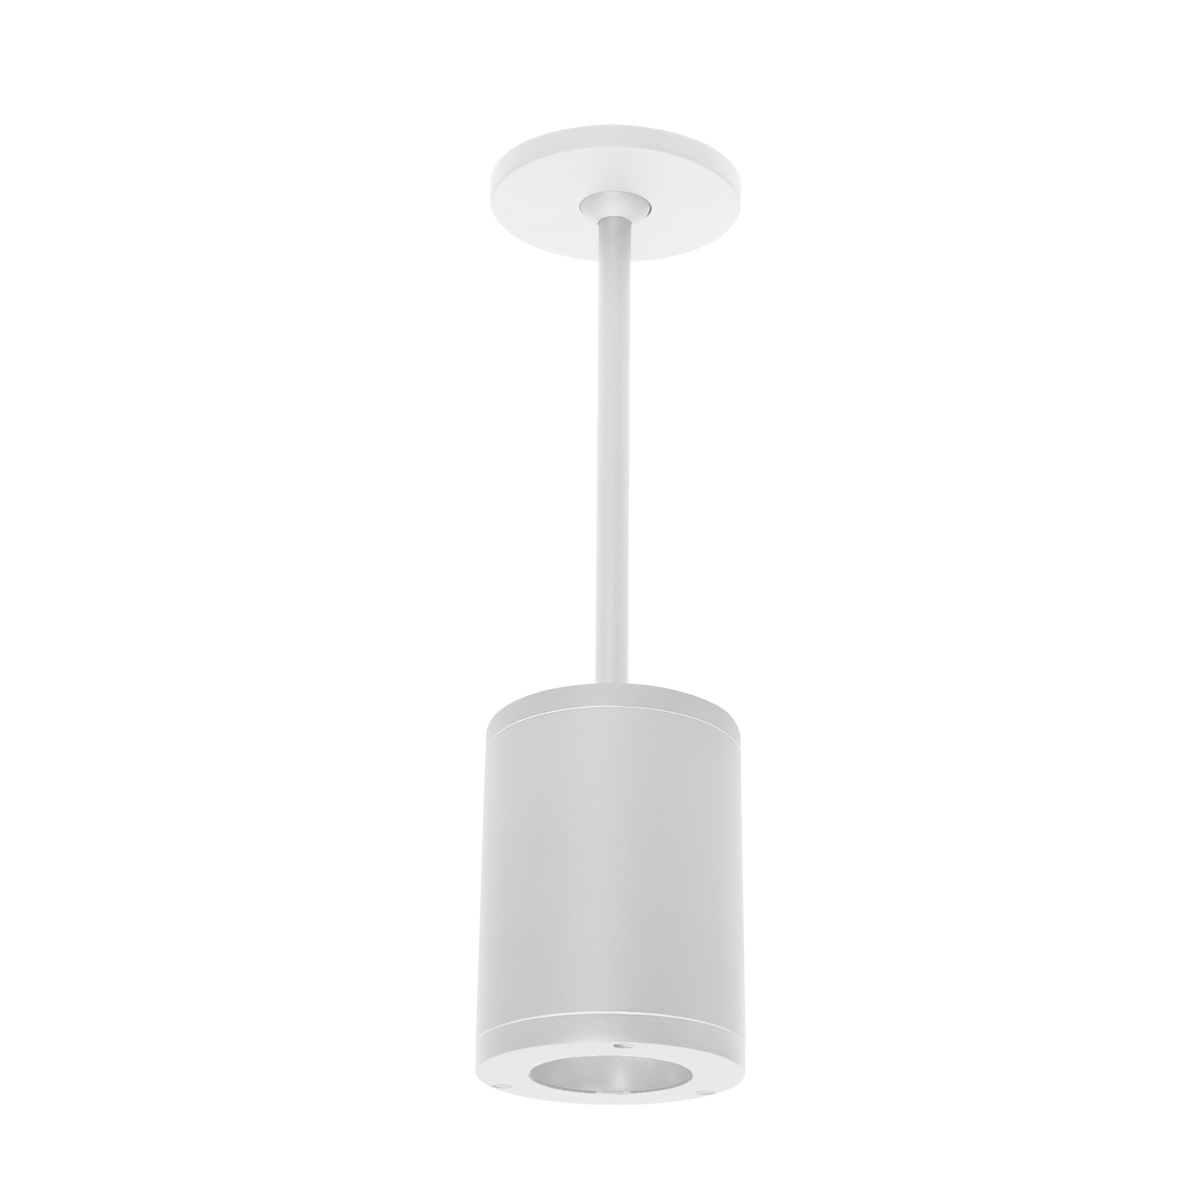 WAC Lighting DS-CD06-F930-GH 6-Inch Tube Architectural Ceiling Mount 3000K 90 Circuit flood